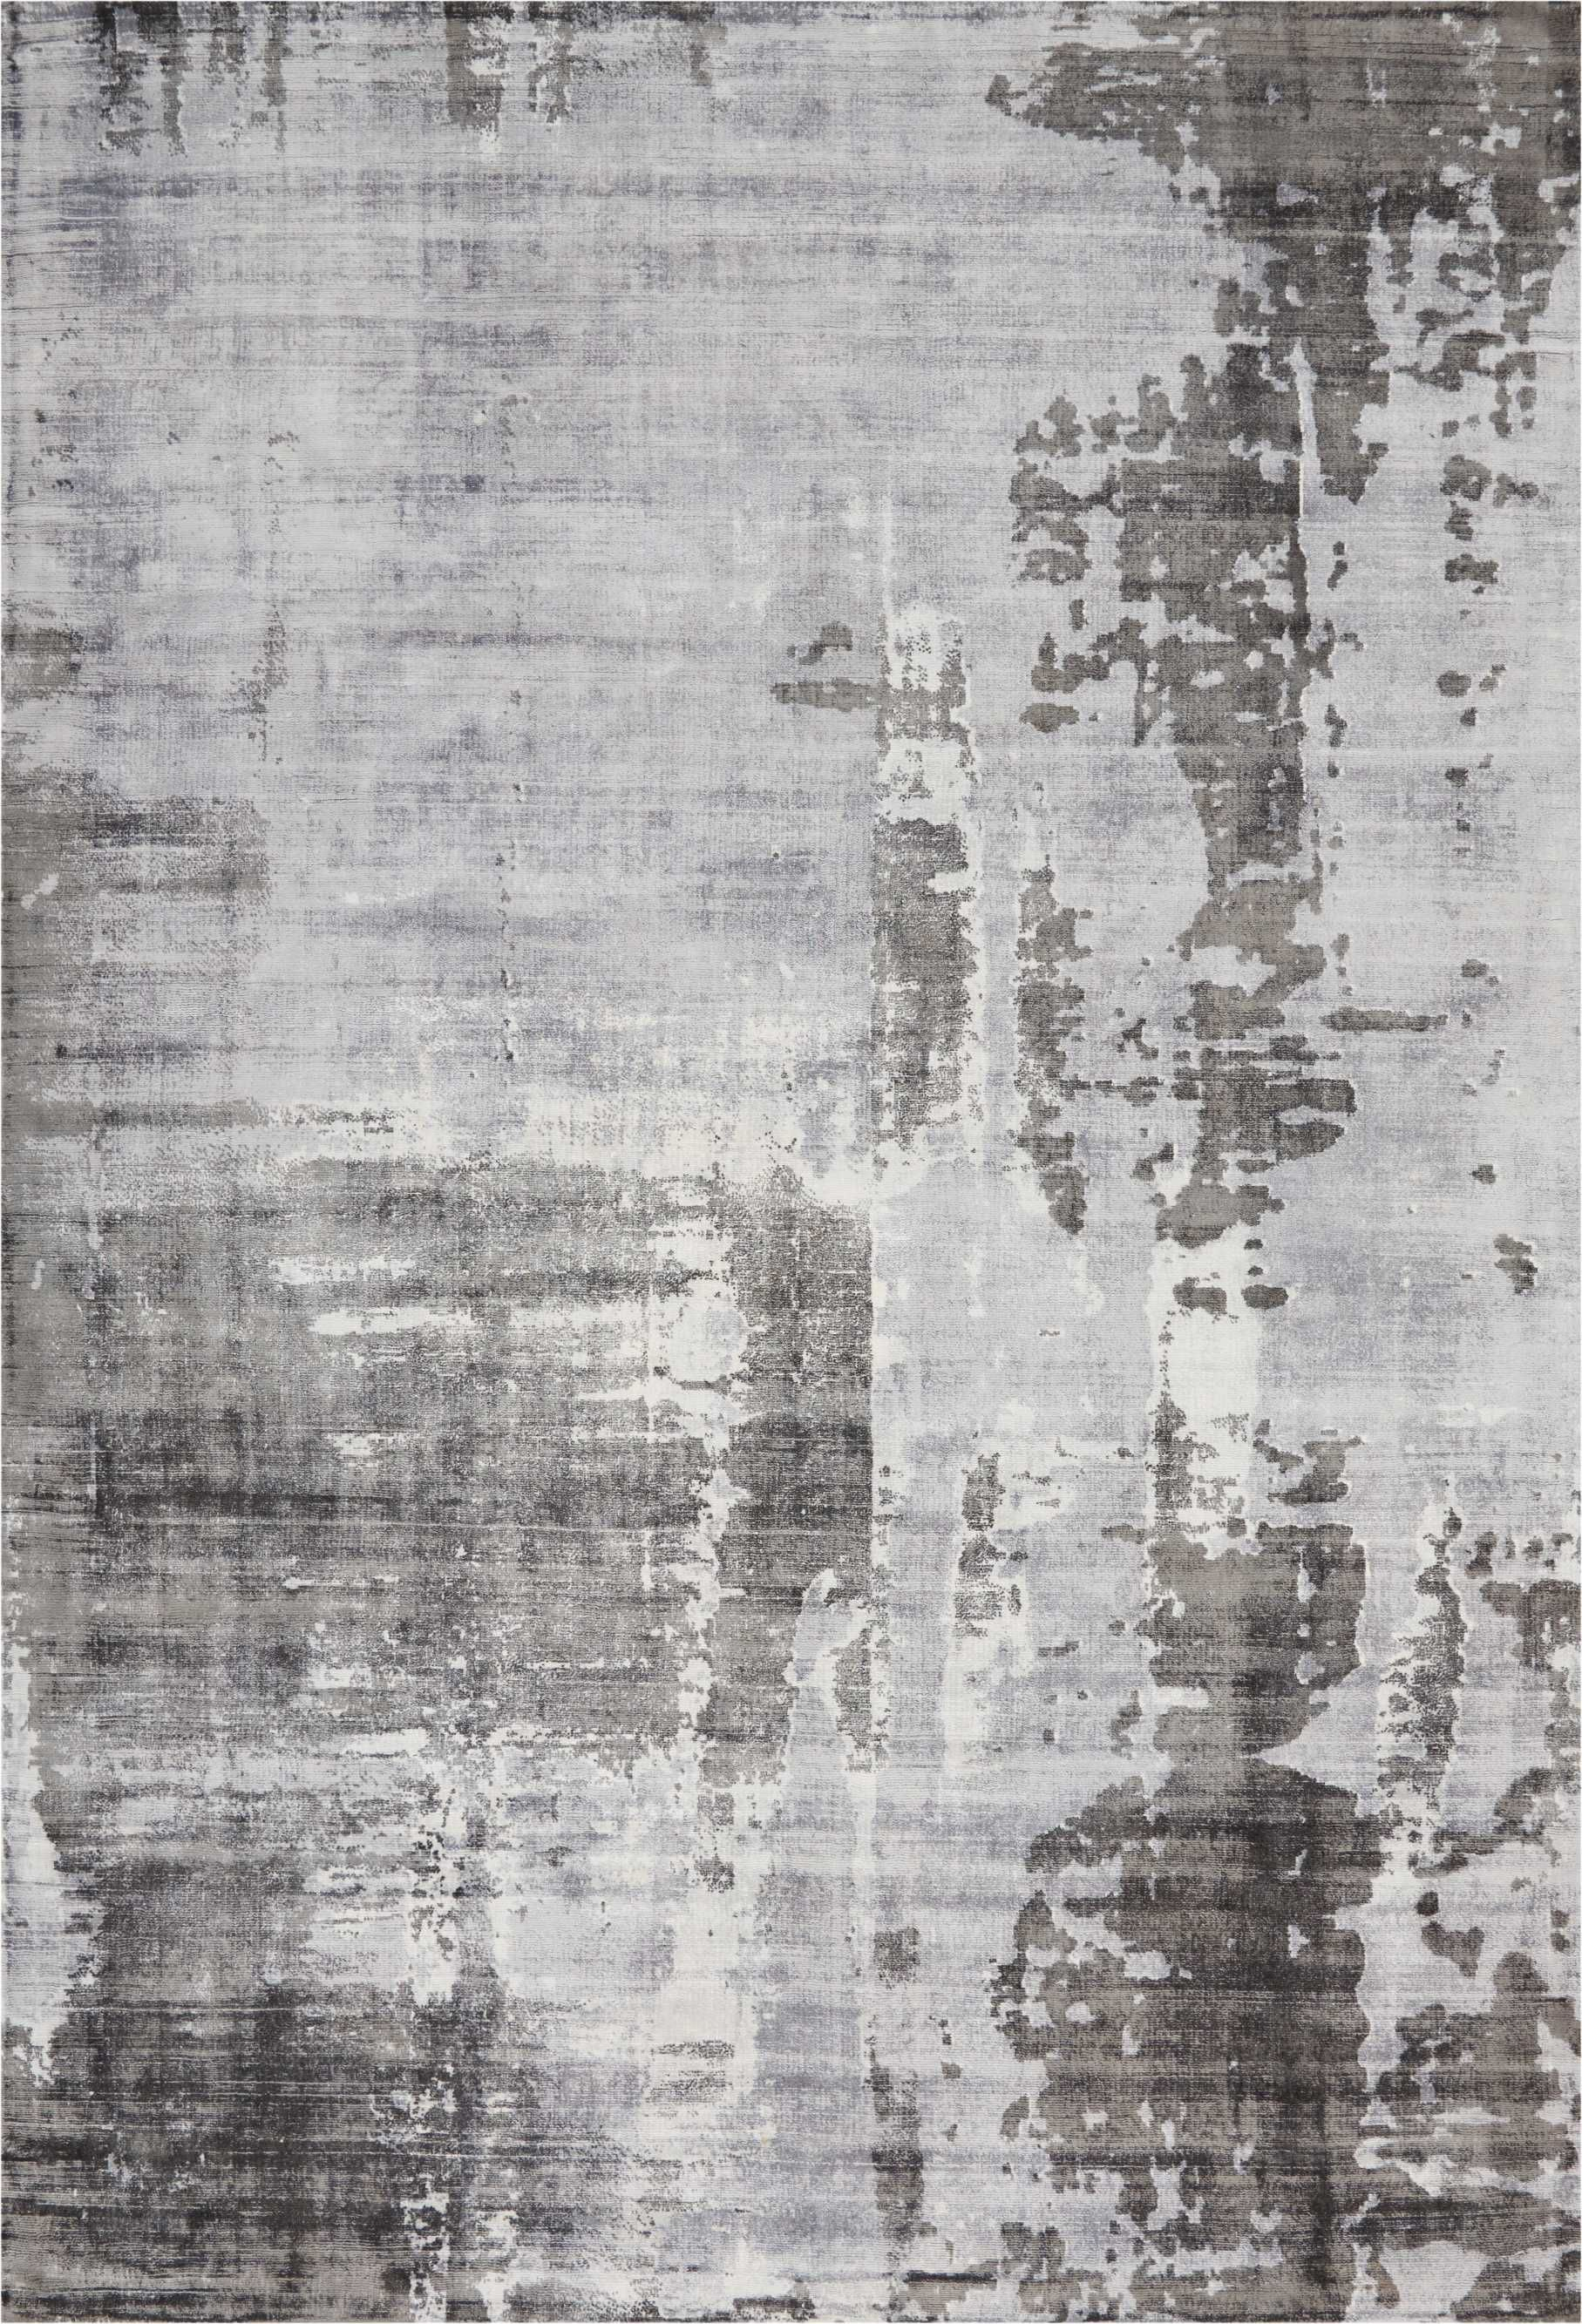 Ki373 Safari Dreams Grey Sophisticated Shades Of Grey Play Out Over An Abrash Field Of Pale Grey And Ivory In This S Rugs On Carpet Abstract Modern Rugs Grey